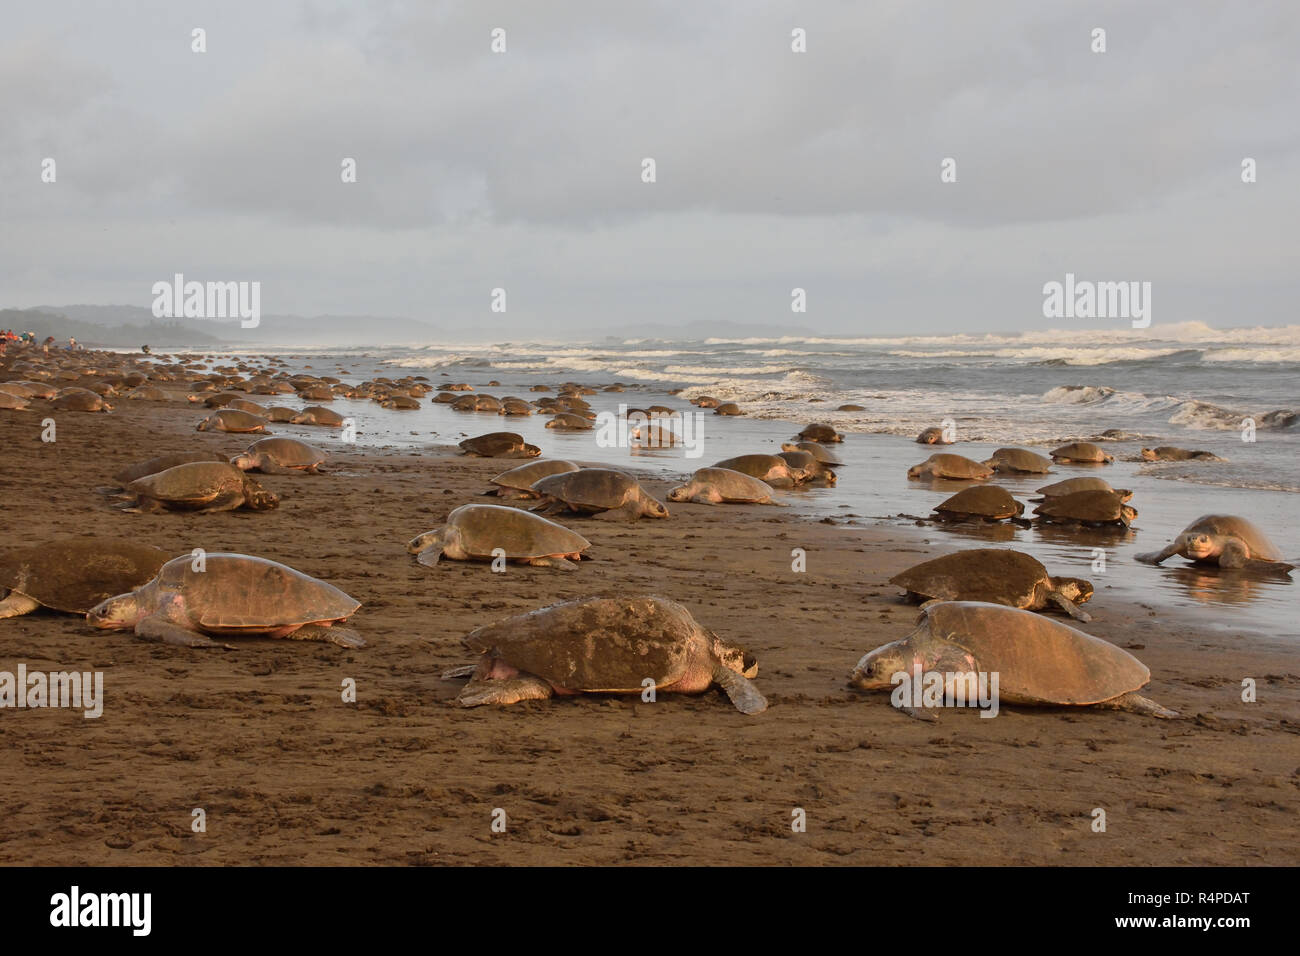 A Massive turtles nesting of Olive Ridley sea turtles in Ostional beach; Costa Rica, Guancaste - Stock Image